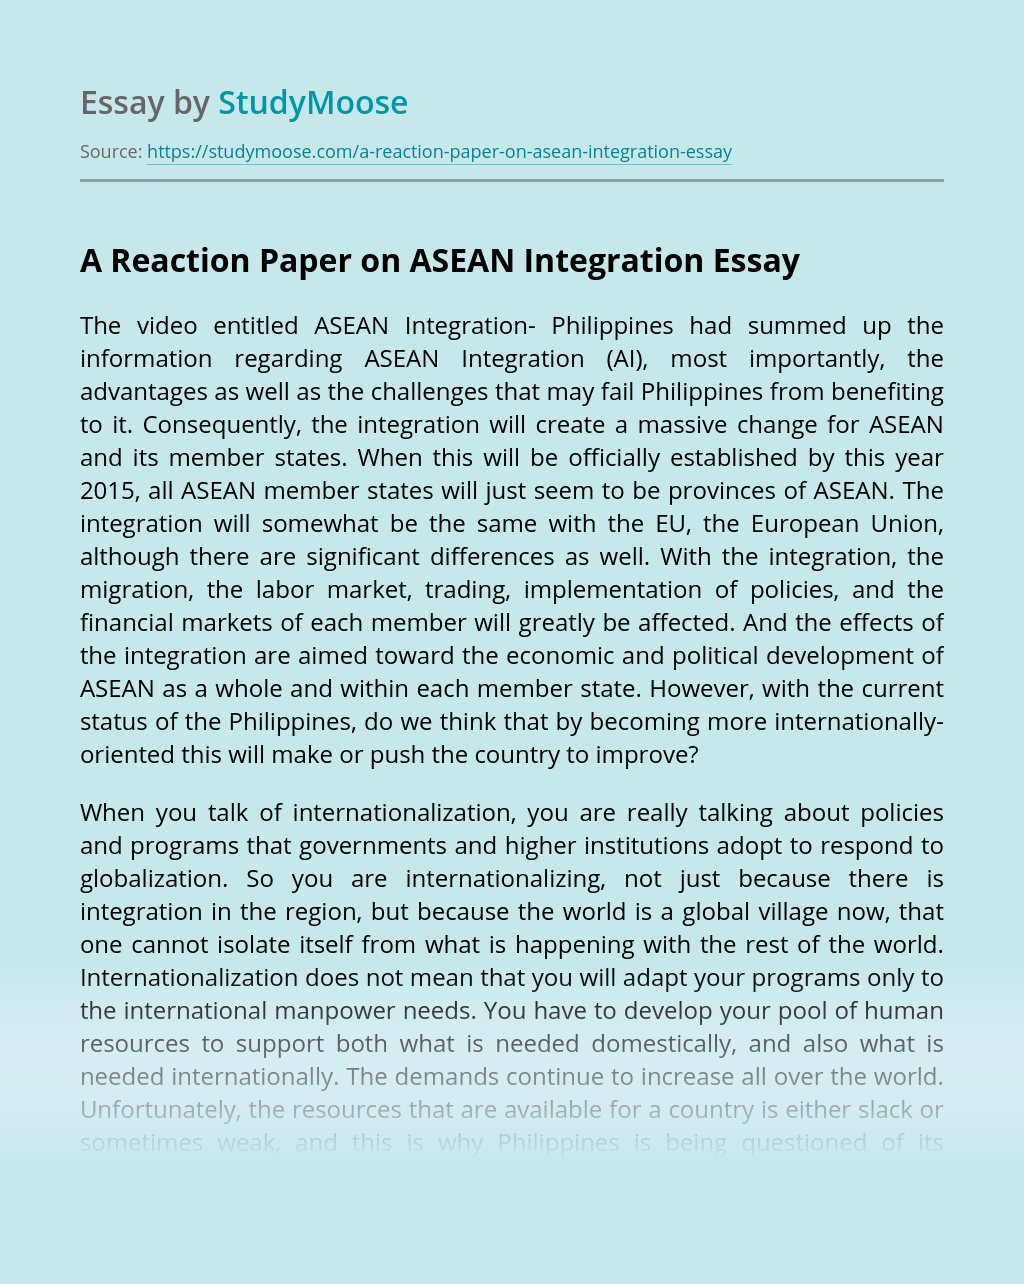 A Reaction Paper on ASEAN Integration